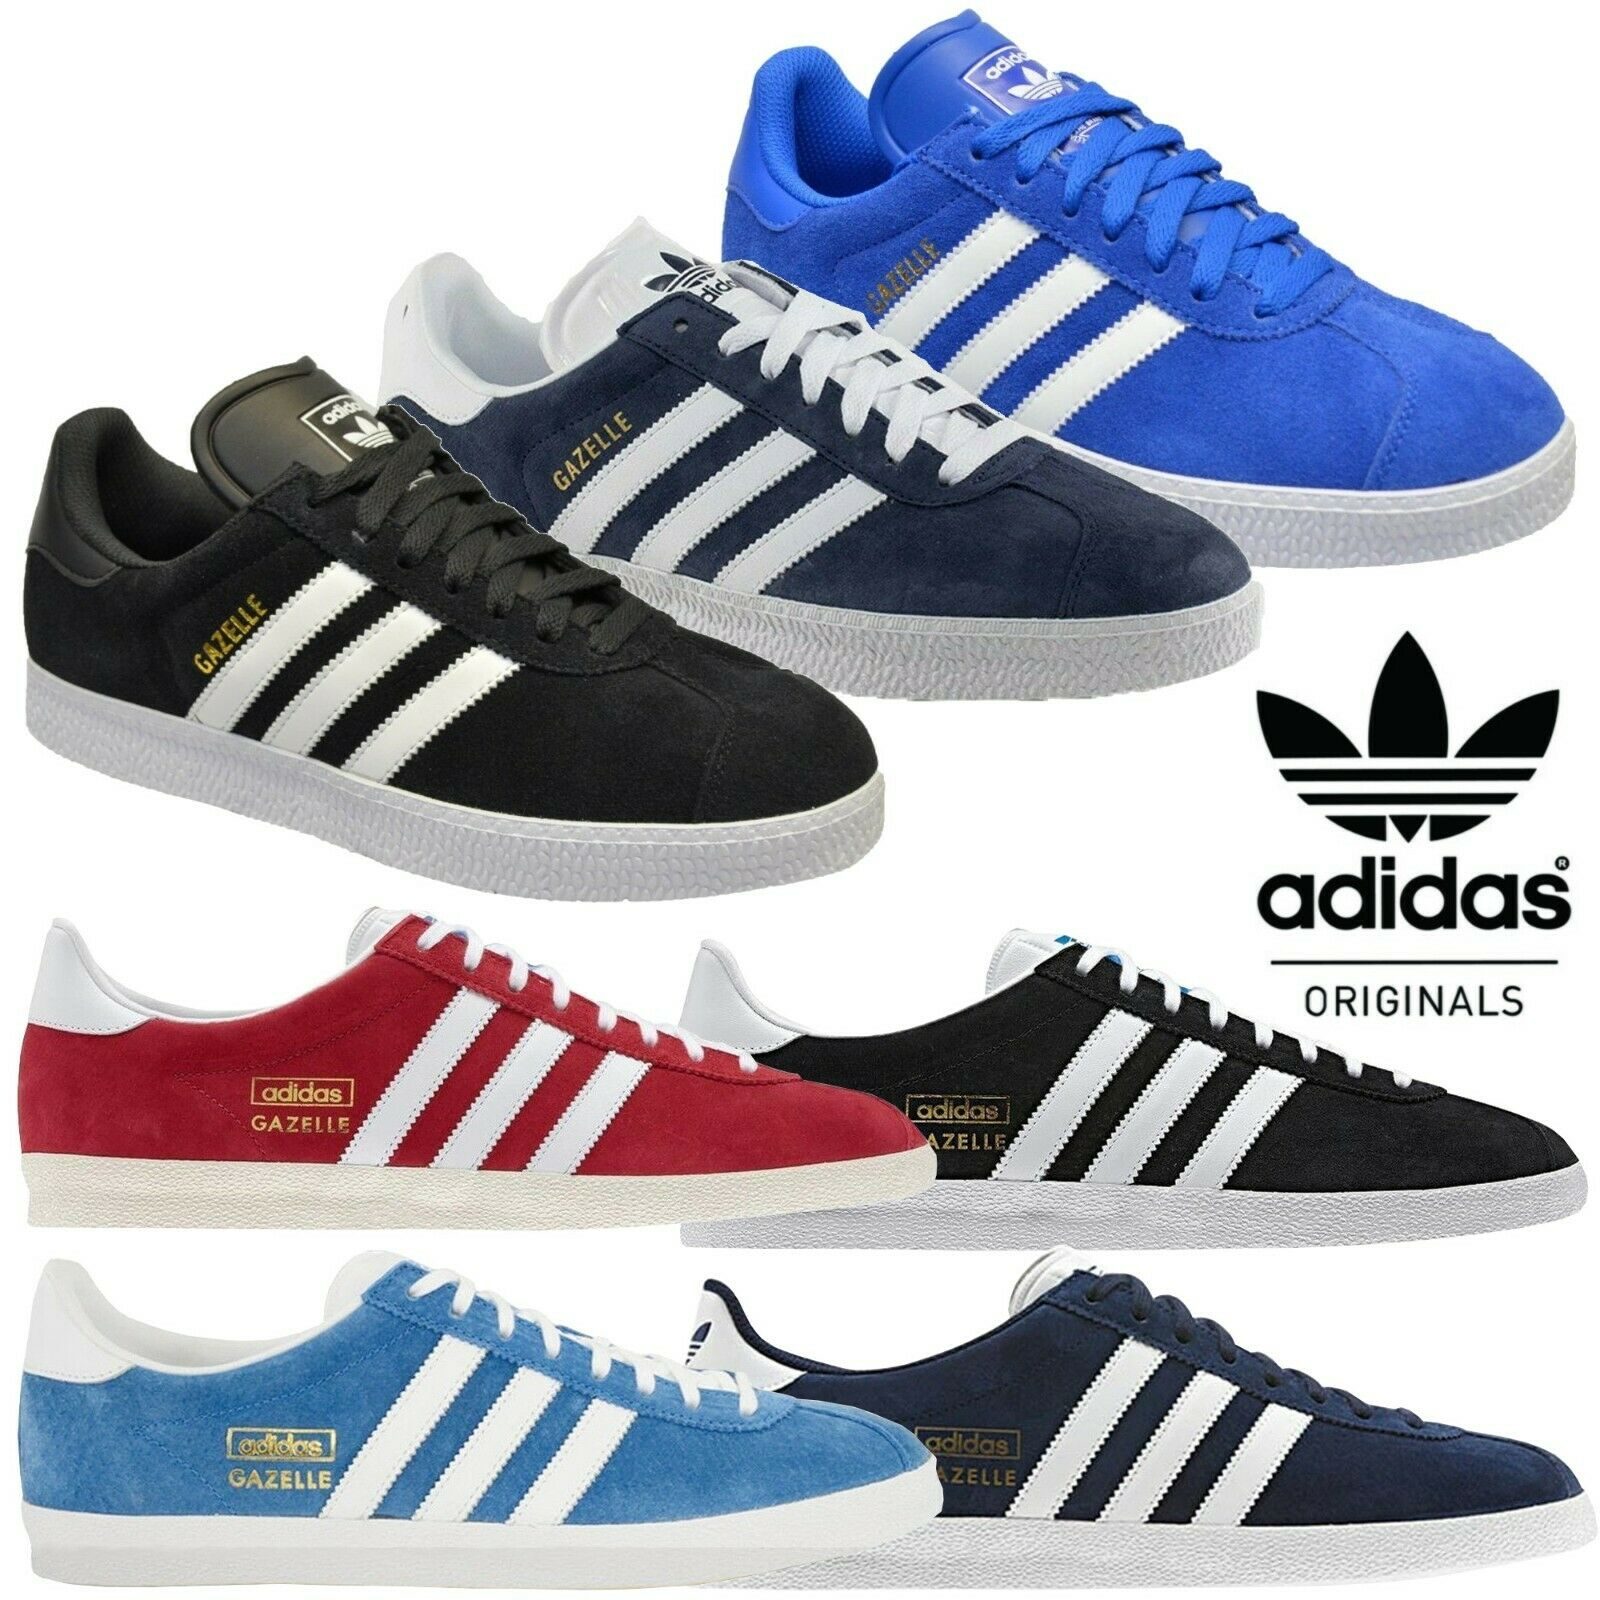 retail prices later various styles Details about Adidas Originals Gazelle OG & Gazelle II Men's Trainers Retro  Casual Sneakers 🔥